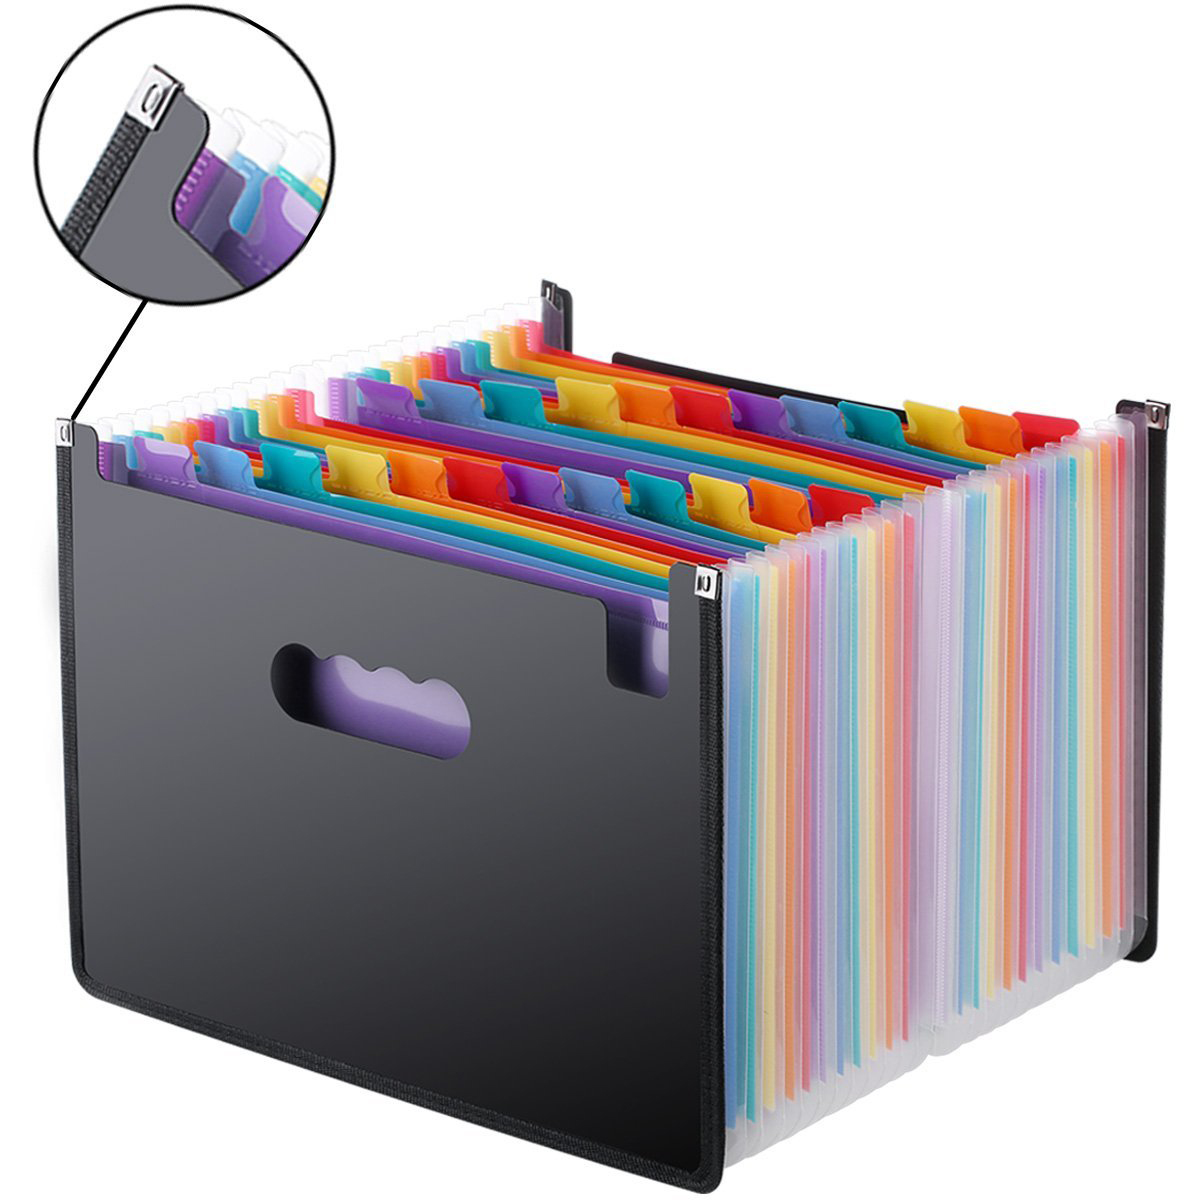 Expanding File A4 Folder Office School Portfolio File Folders Document Organizer Plastic 24 Pockets 3000 Sheets Large Capacity